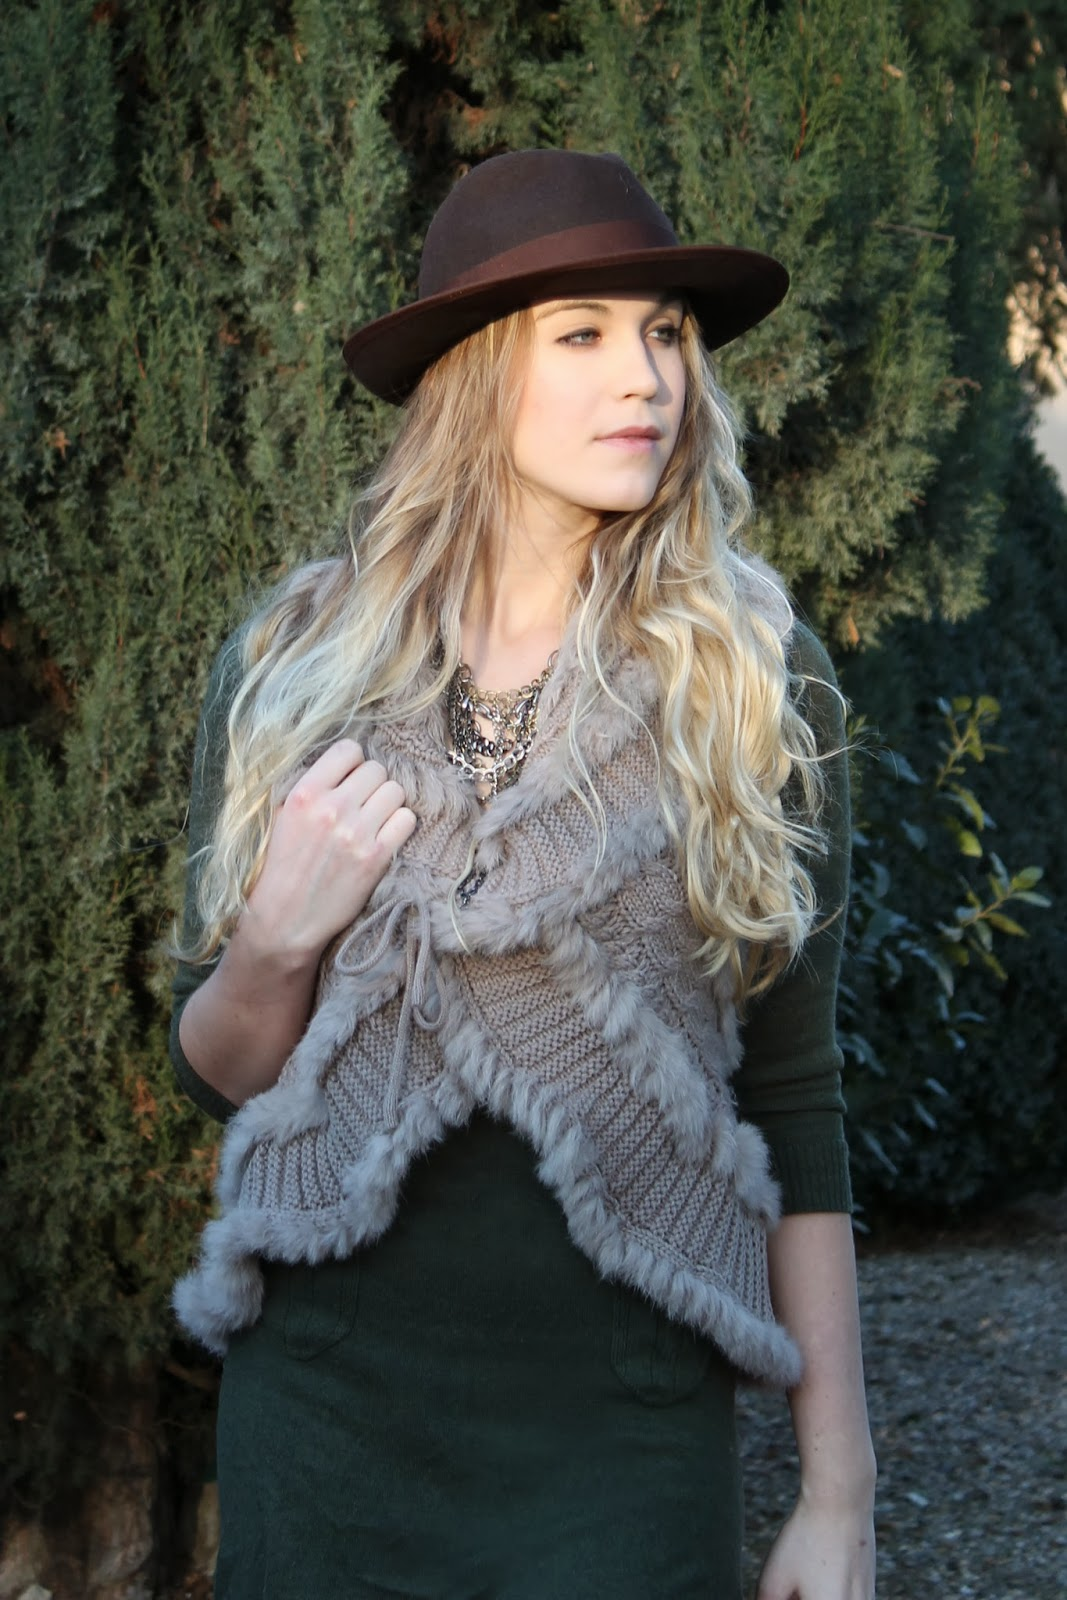 urban outfitters necklace, bcbg hat